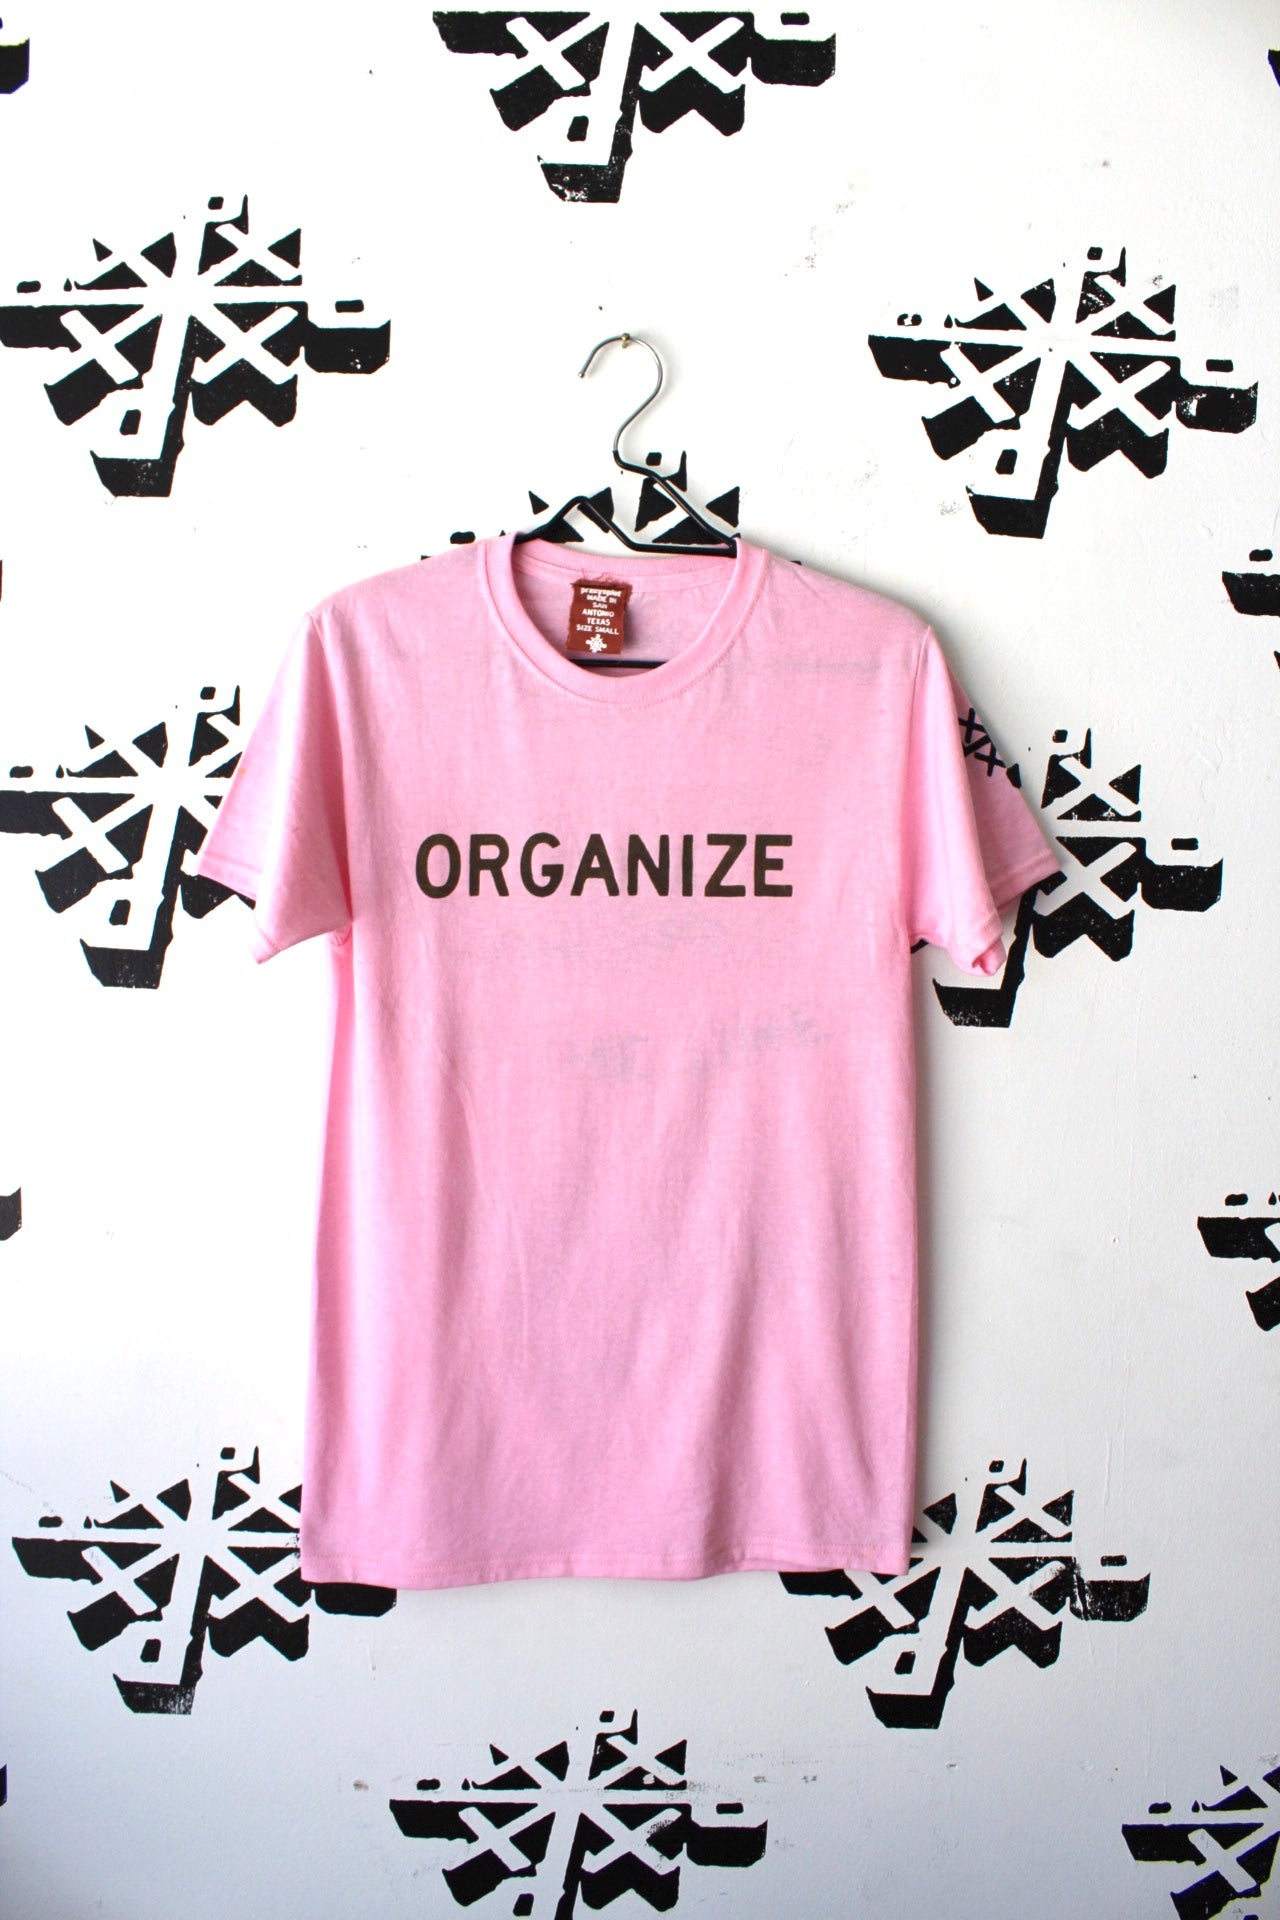 Image of organize and DWS tee in pink